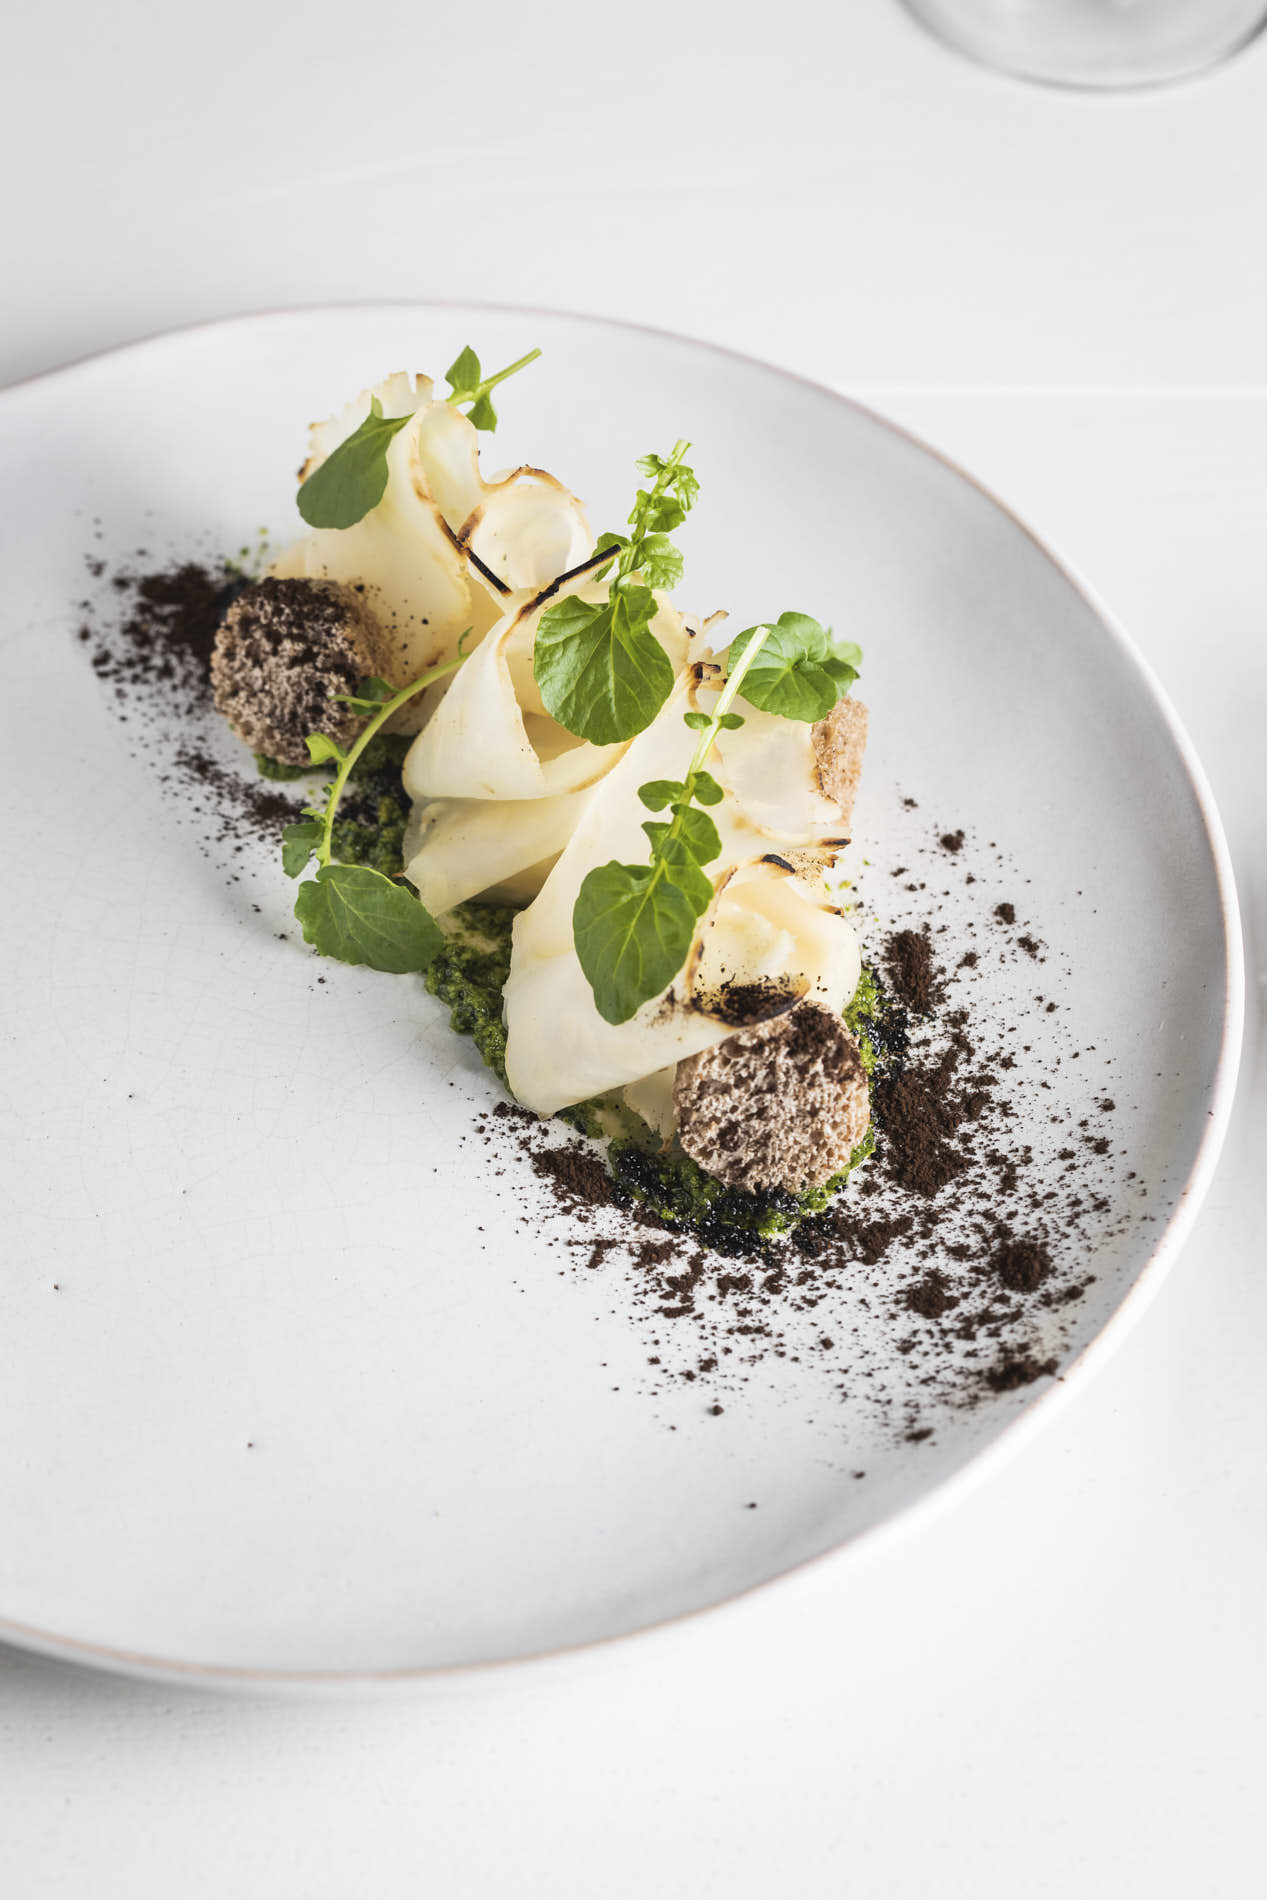 topshot of a plant-based dish created by Nicolas Decloedt on a white plate